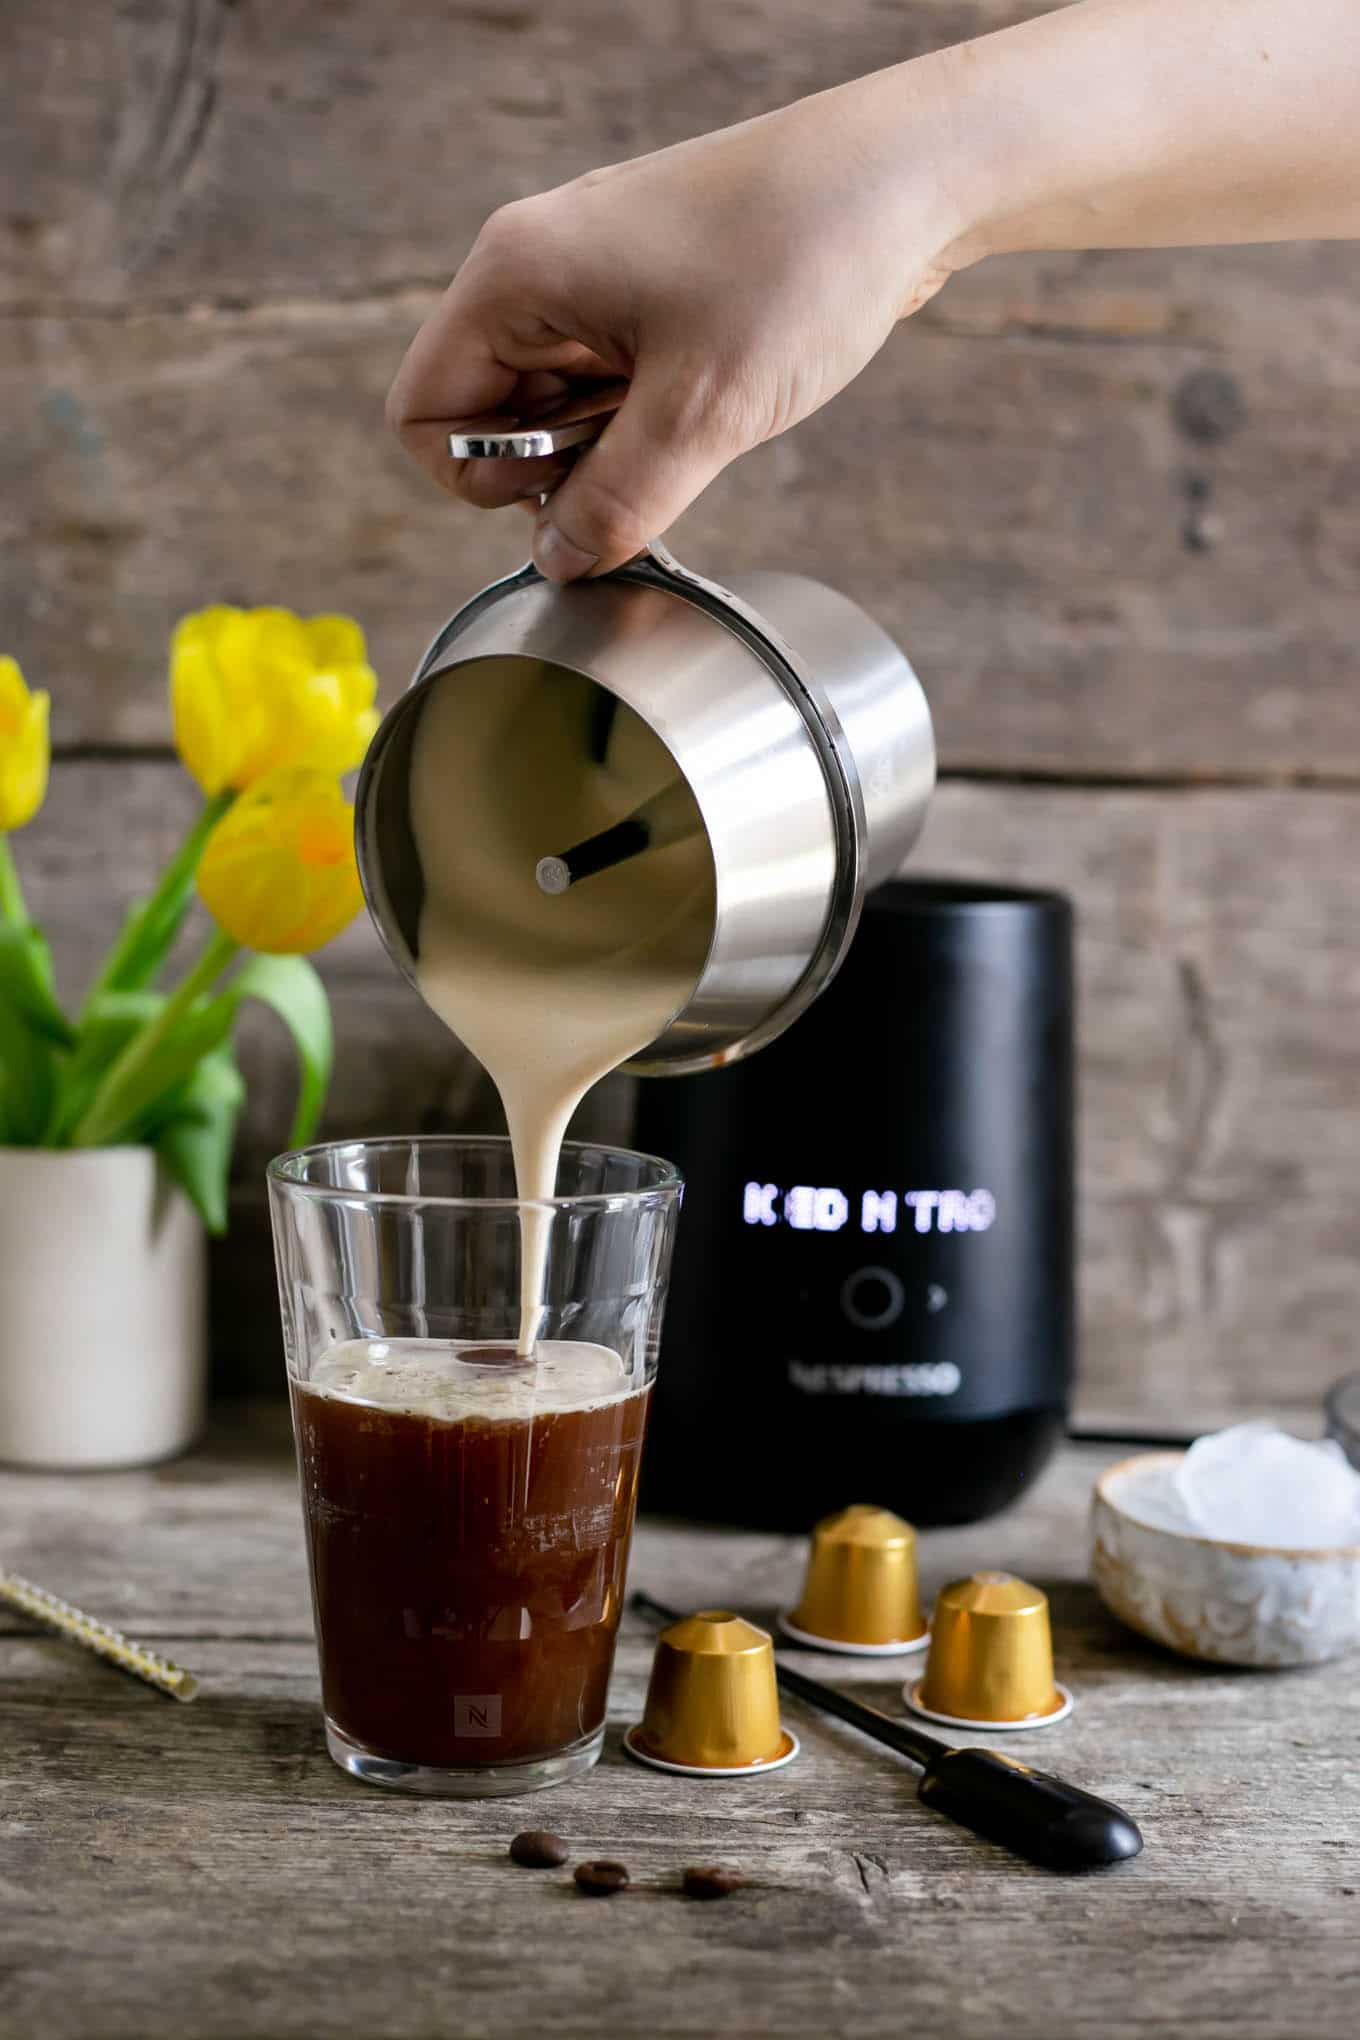 Nespresso coffee recipes using Barista drink maker #coffee #coldbrew | via @annabanana.co